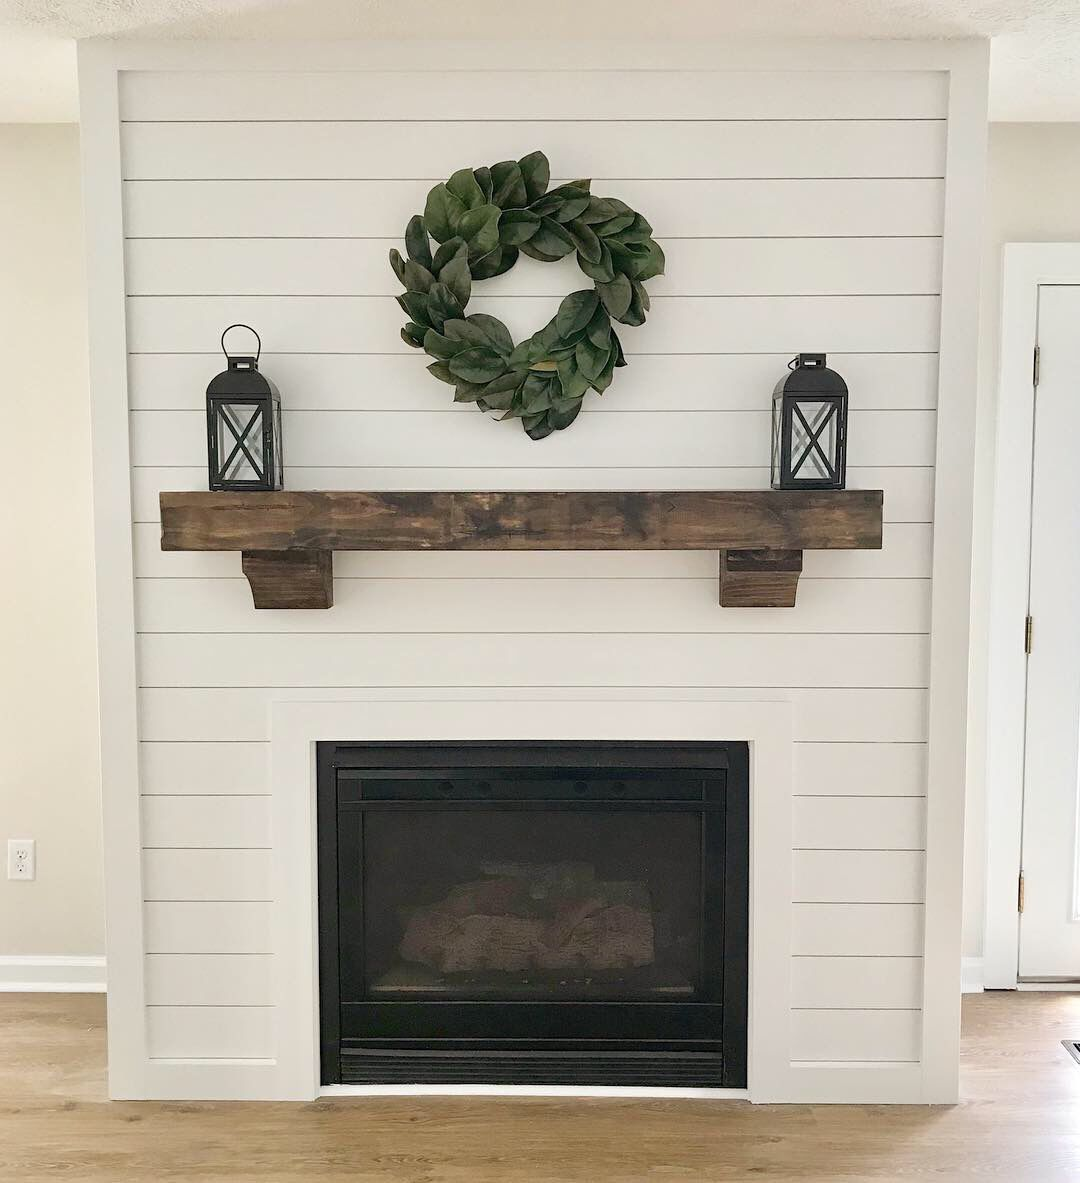 Shiplap Fireplace With Magnolia Wreath And Floating Wood Mantel